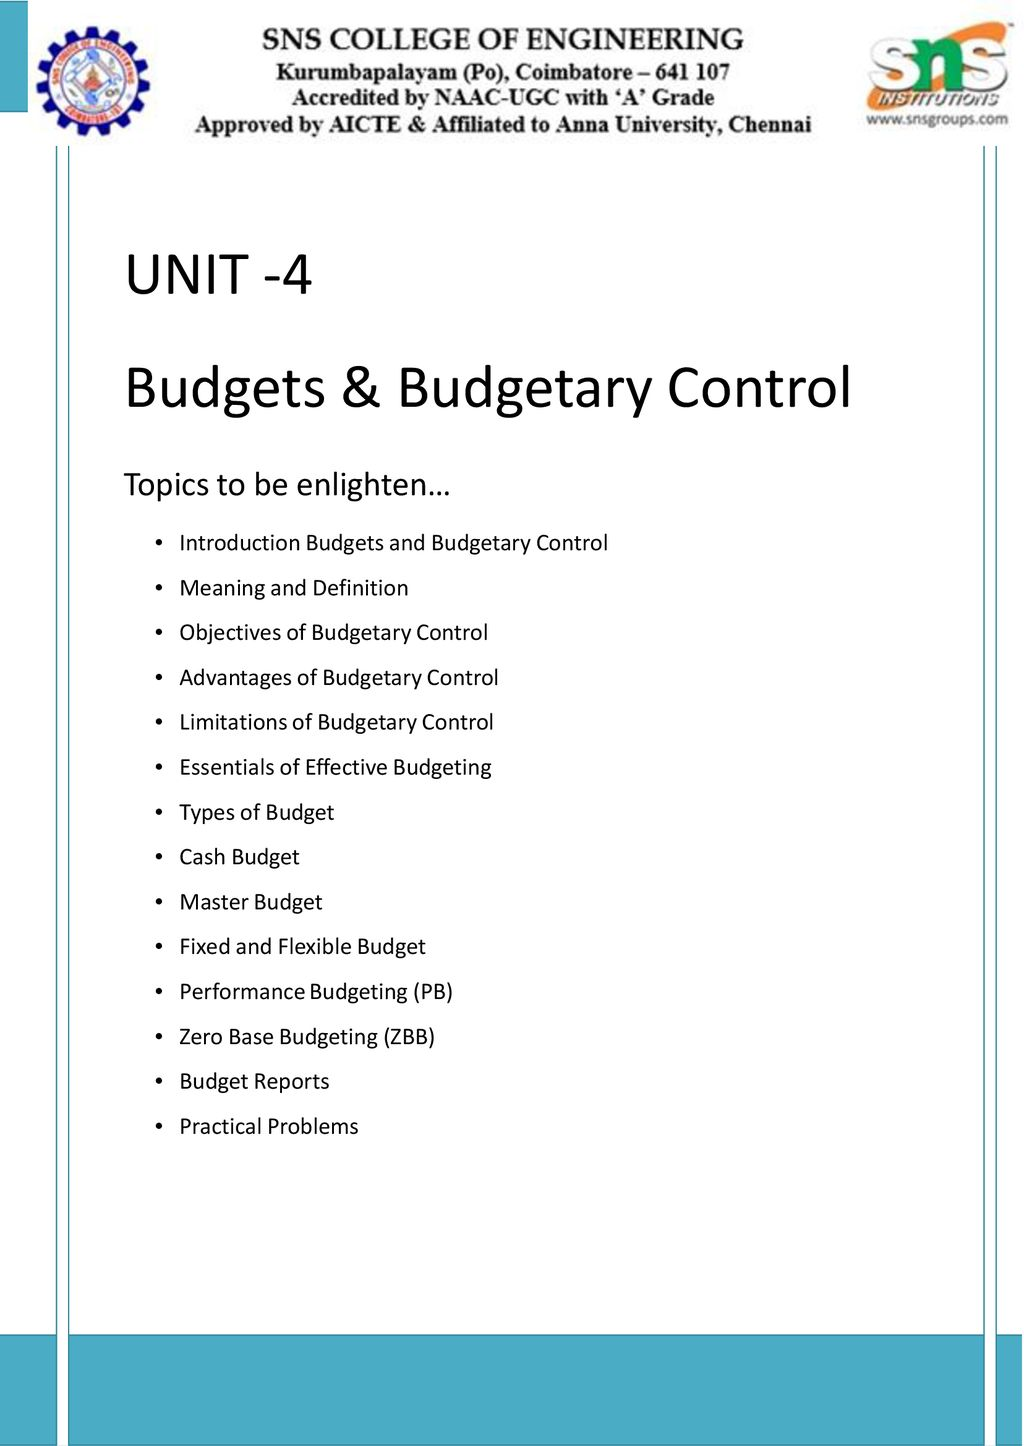 Budgets & Budgetary Control - ppt download